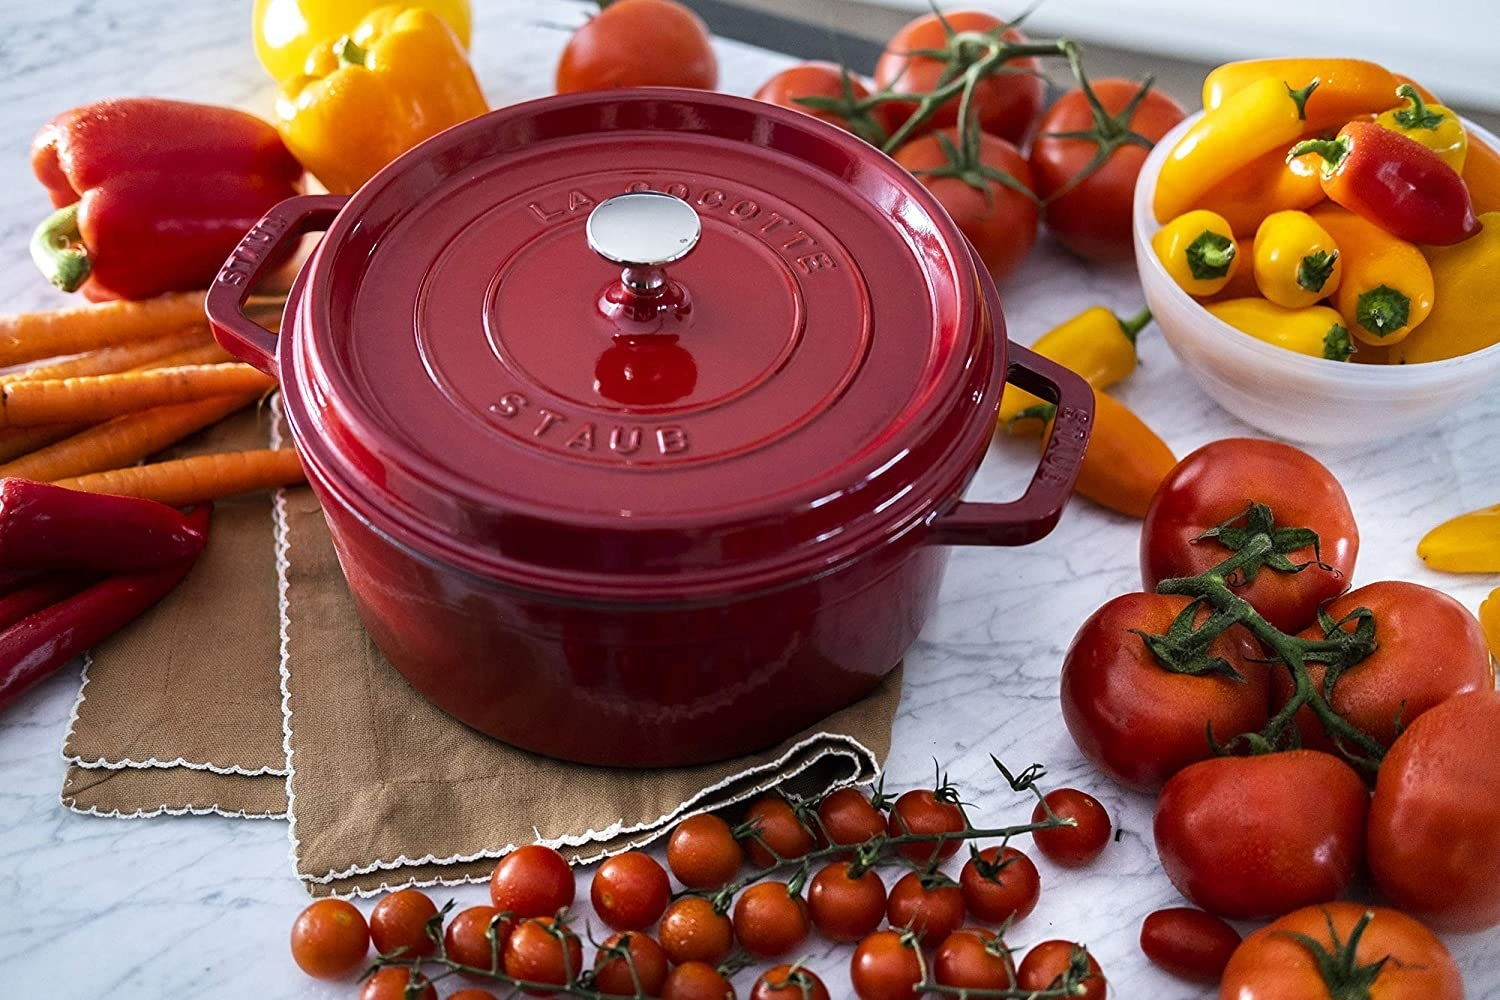 The red Dutch oven with cooked vegetables inside